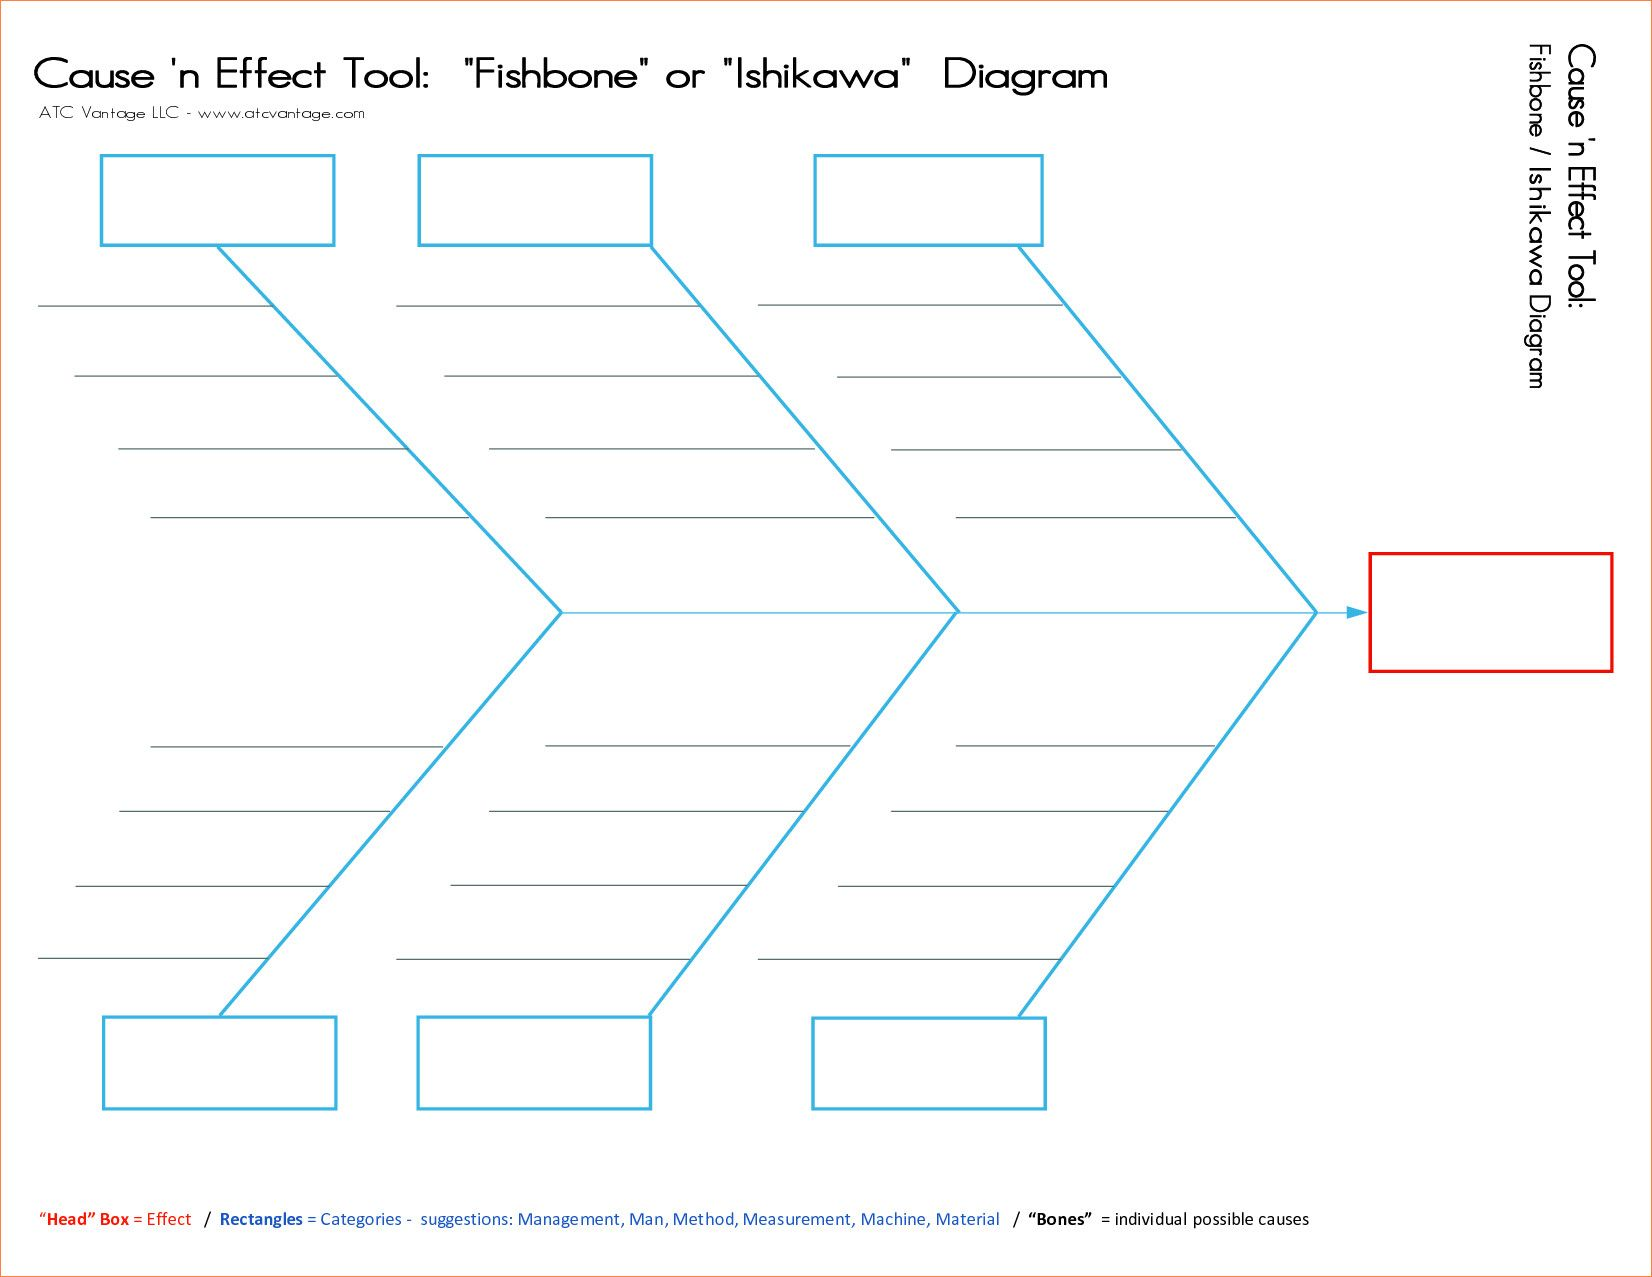 The Astonishing 029 Blank Fishbone Diagram Template Word Of Unforgettable Regarding Blank Fishbone Diagram Tem In 2020 Business Template Word Template Ishikawa Diagram